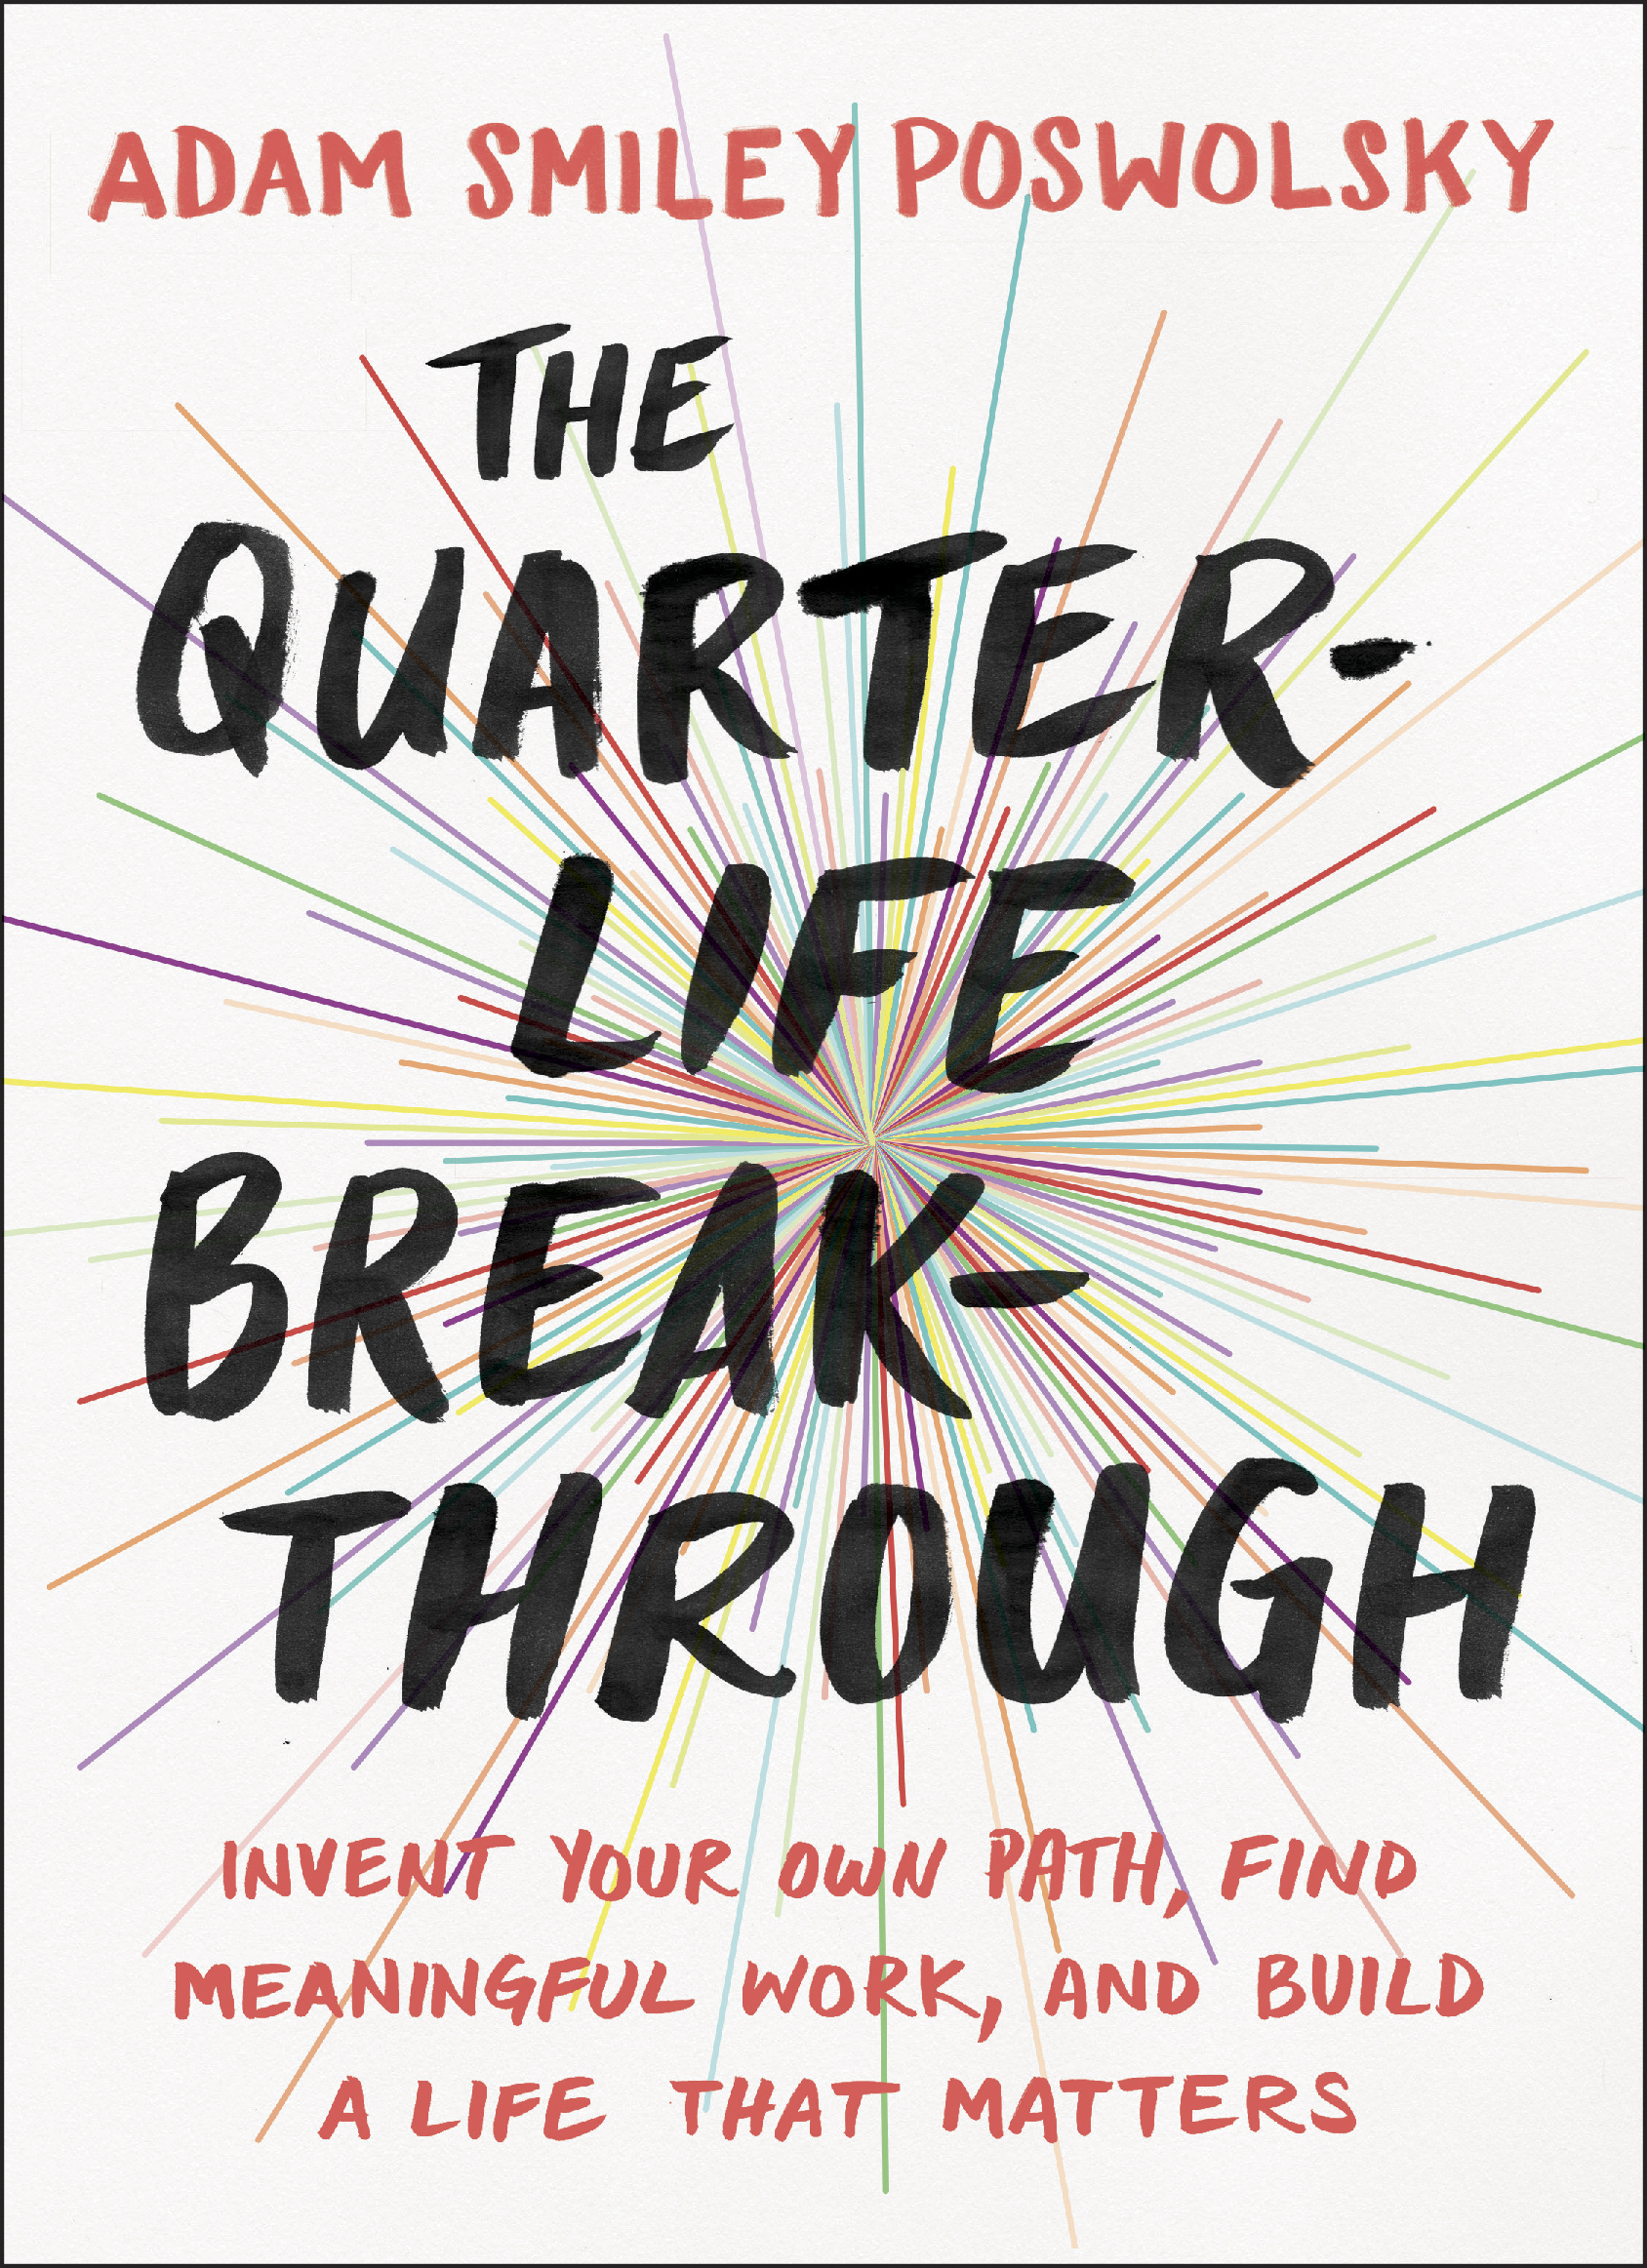 Book cover_QuarterLifeBreakthrough 2016_Adam Smiley Poswolsky.jpg